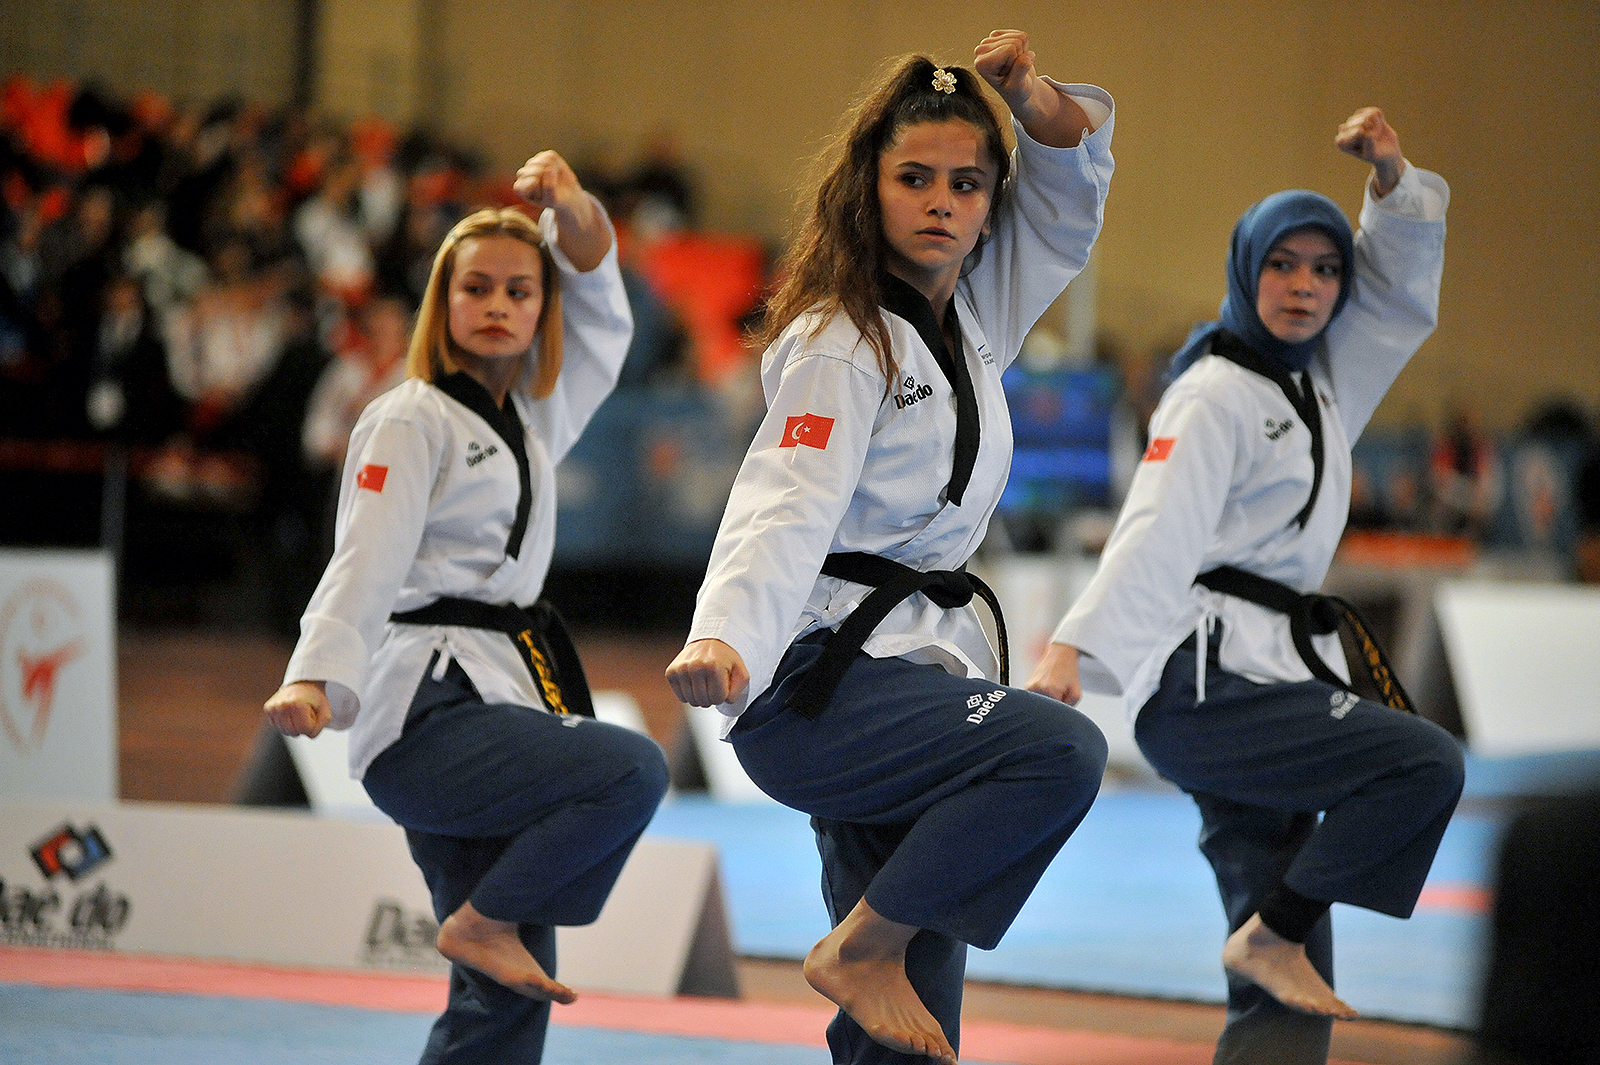 Poomsae_MasTKD_7th-Turkish-Open-Taekwondo-Tournament